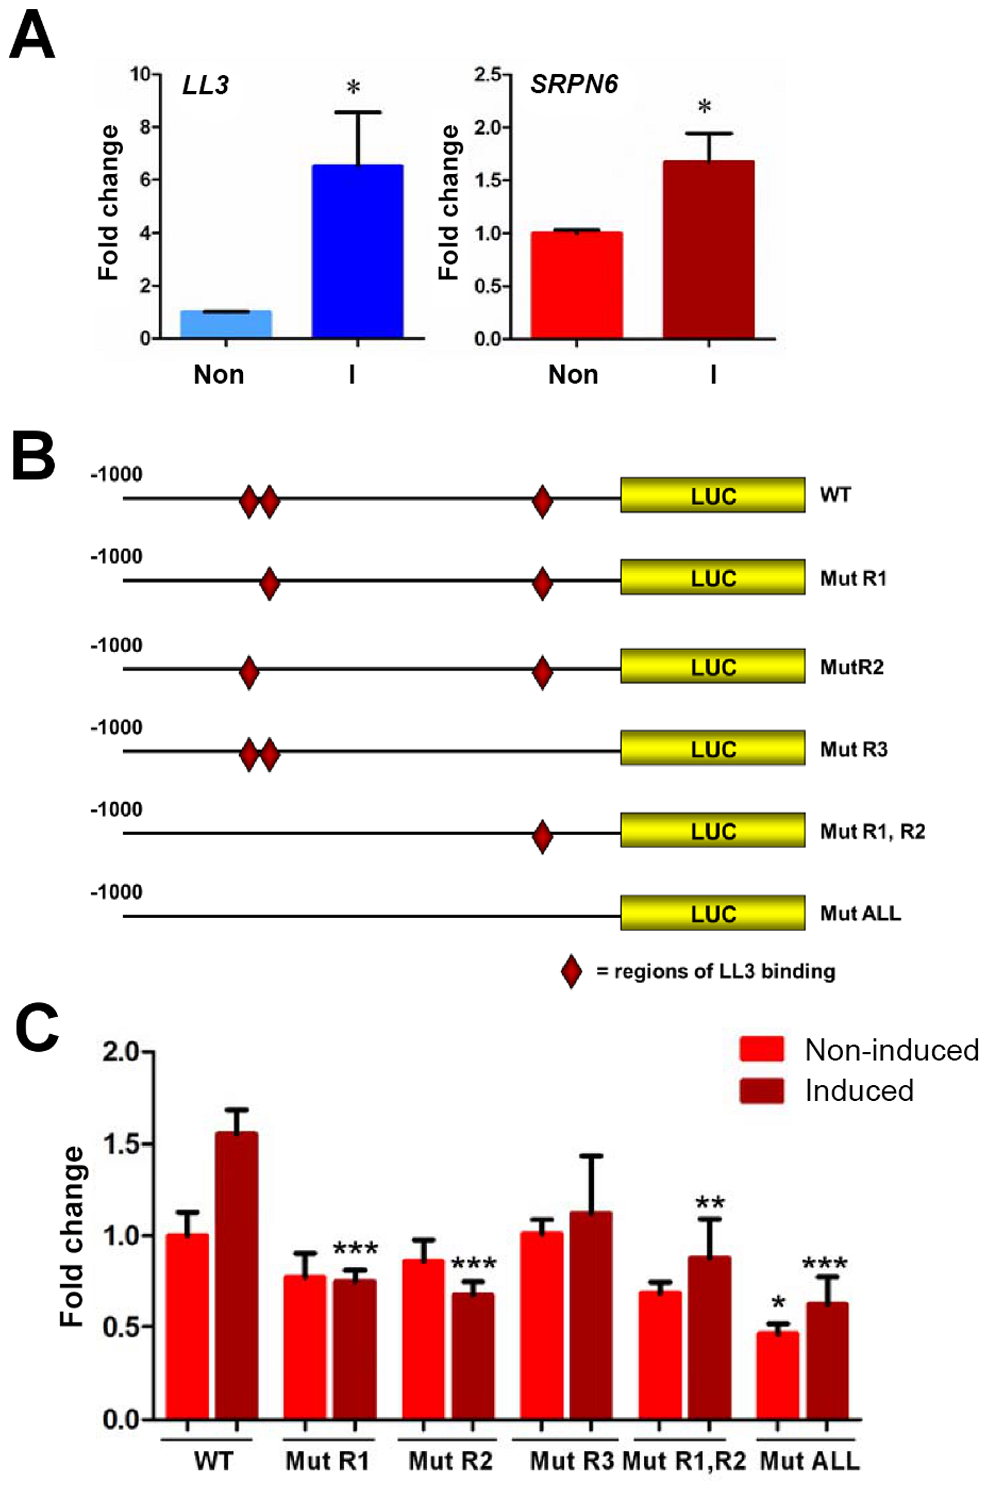 Luciferase expression in a mosquito cell line suggests the involvement of LL3 in the regulation of SRPN6 expression.